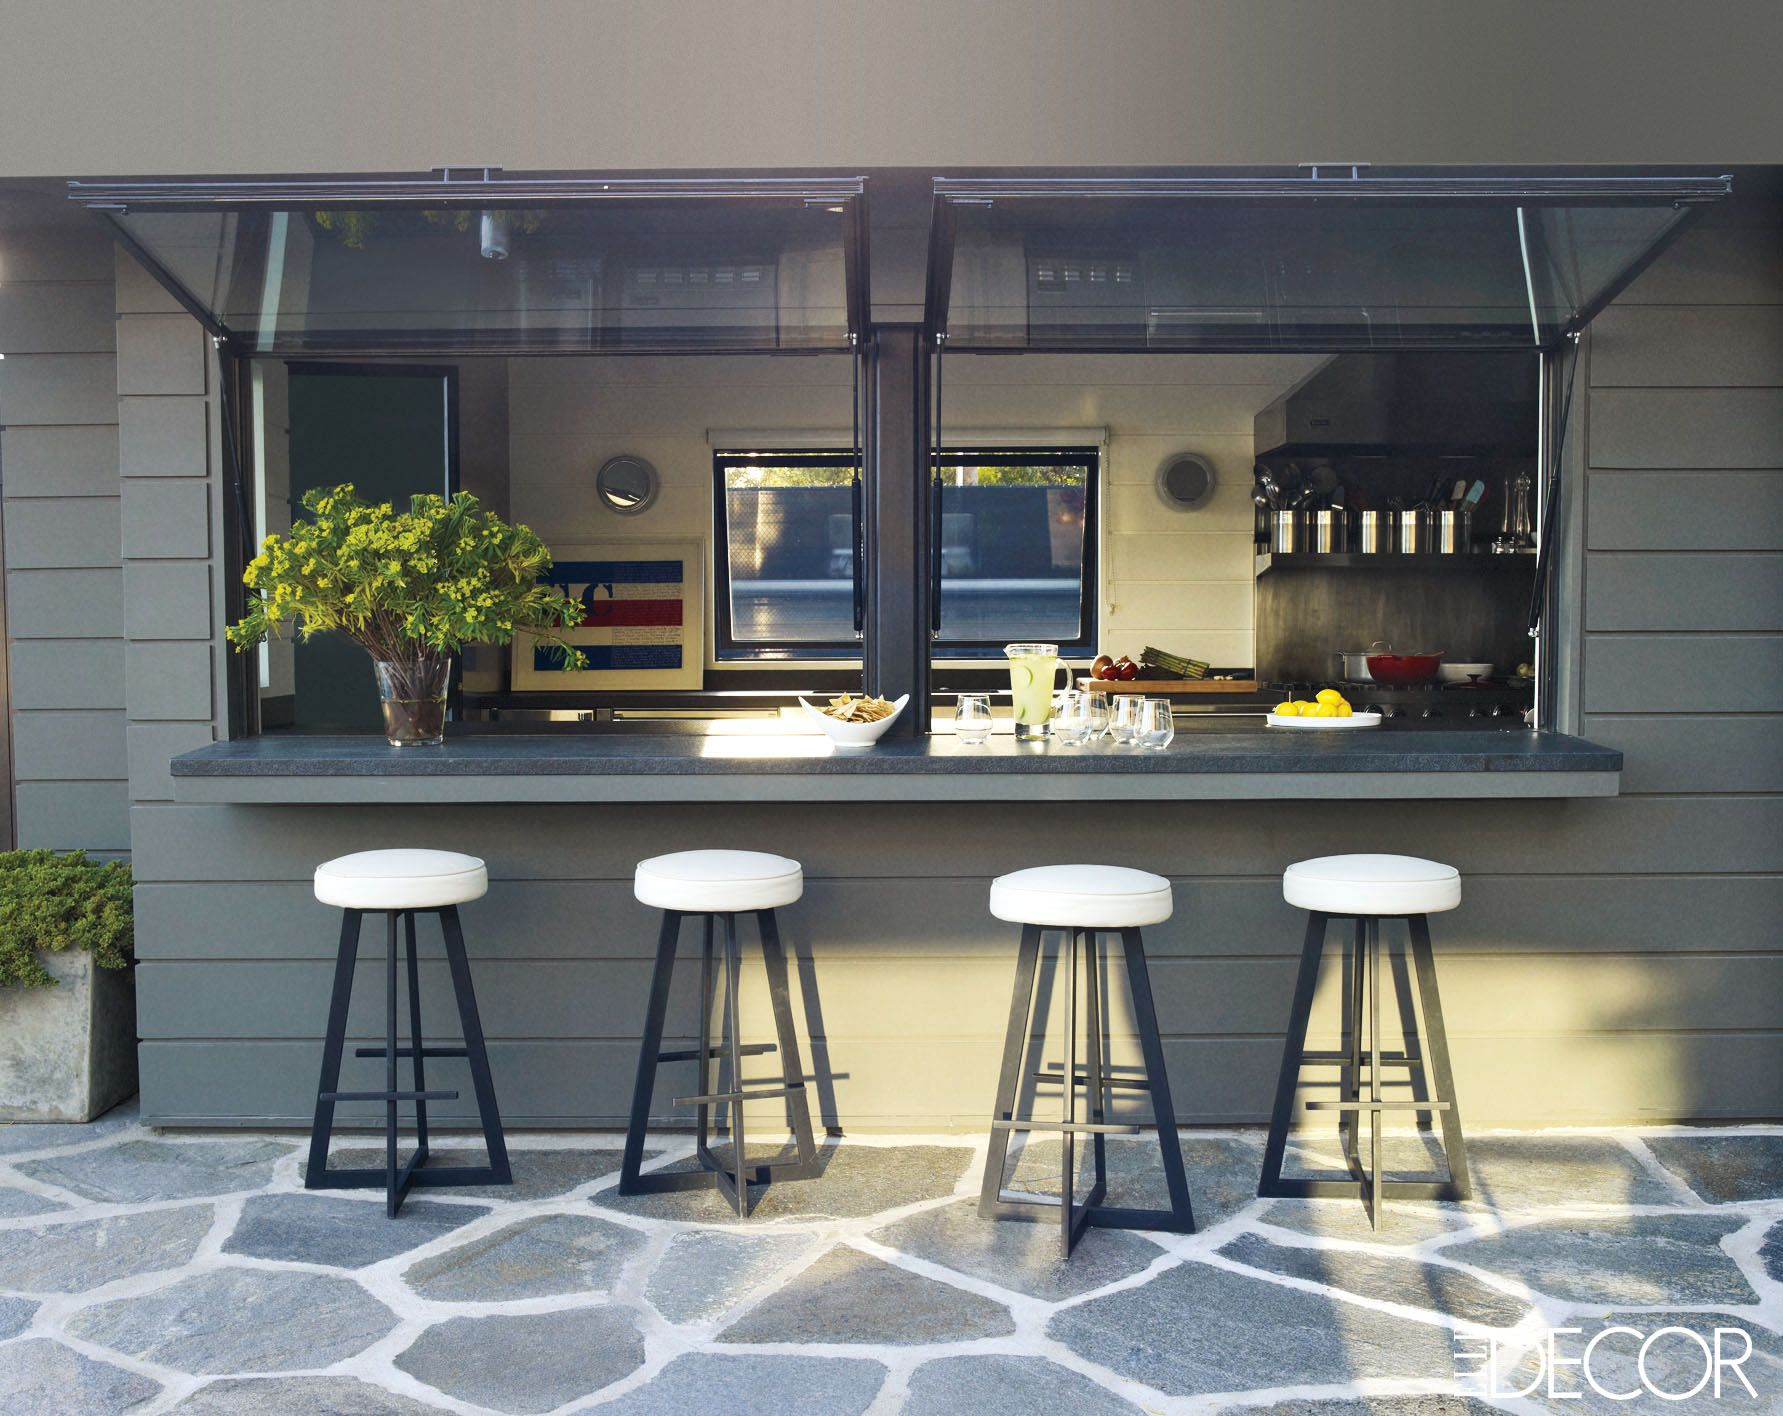 Bar outside kitchen window  courteney coxus private retreat  galley kitchens stools and kitchens